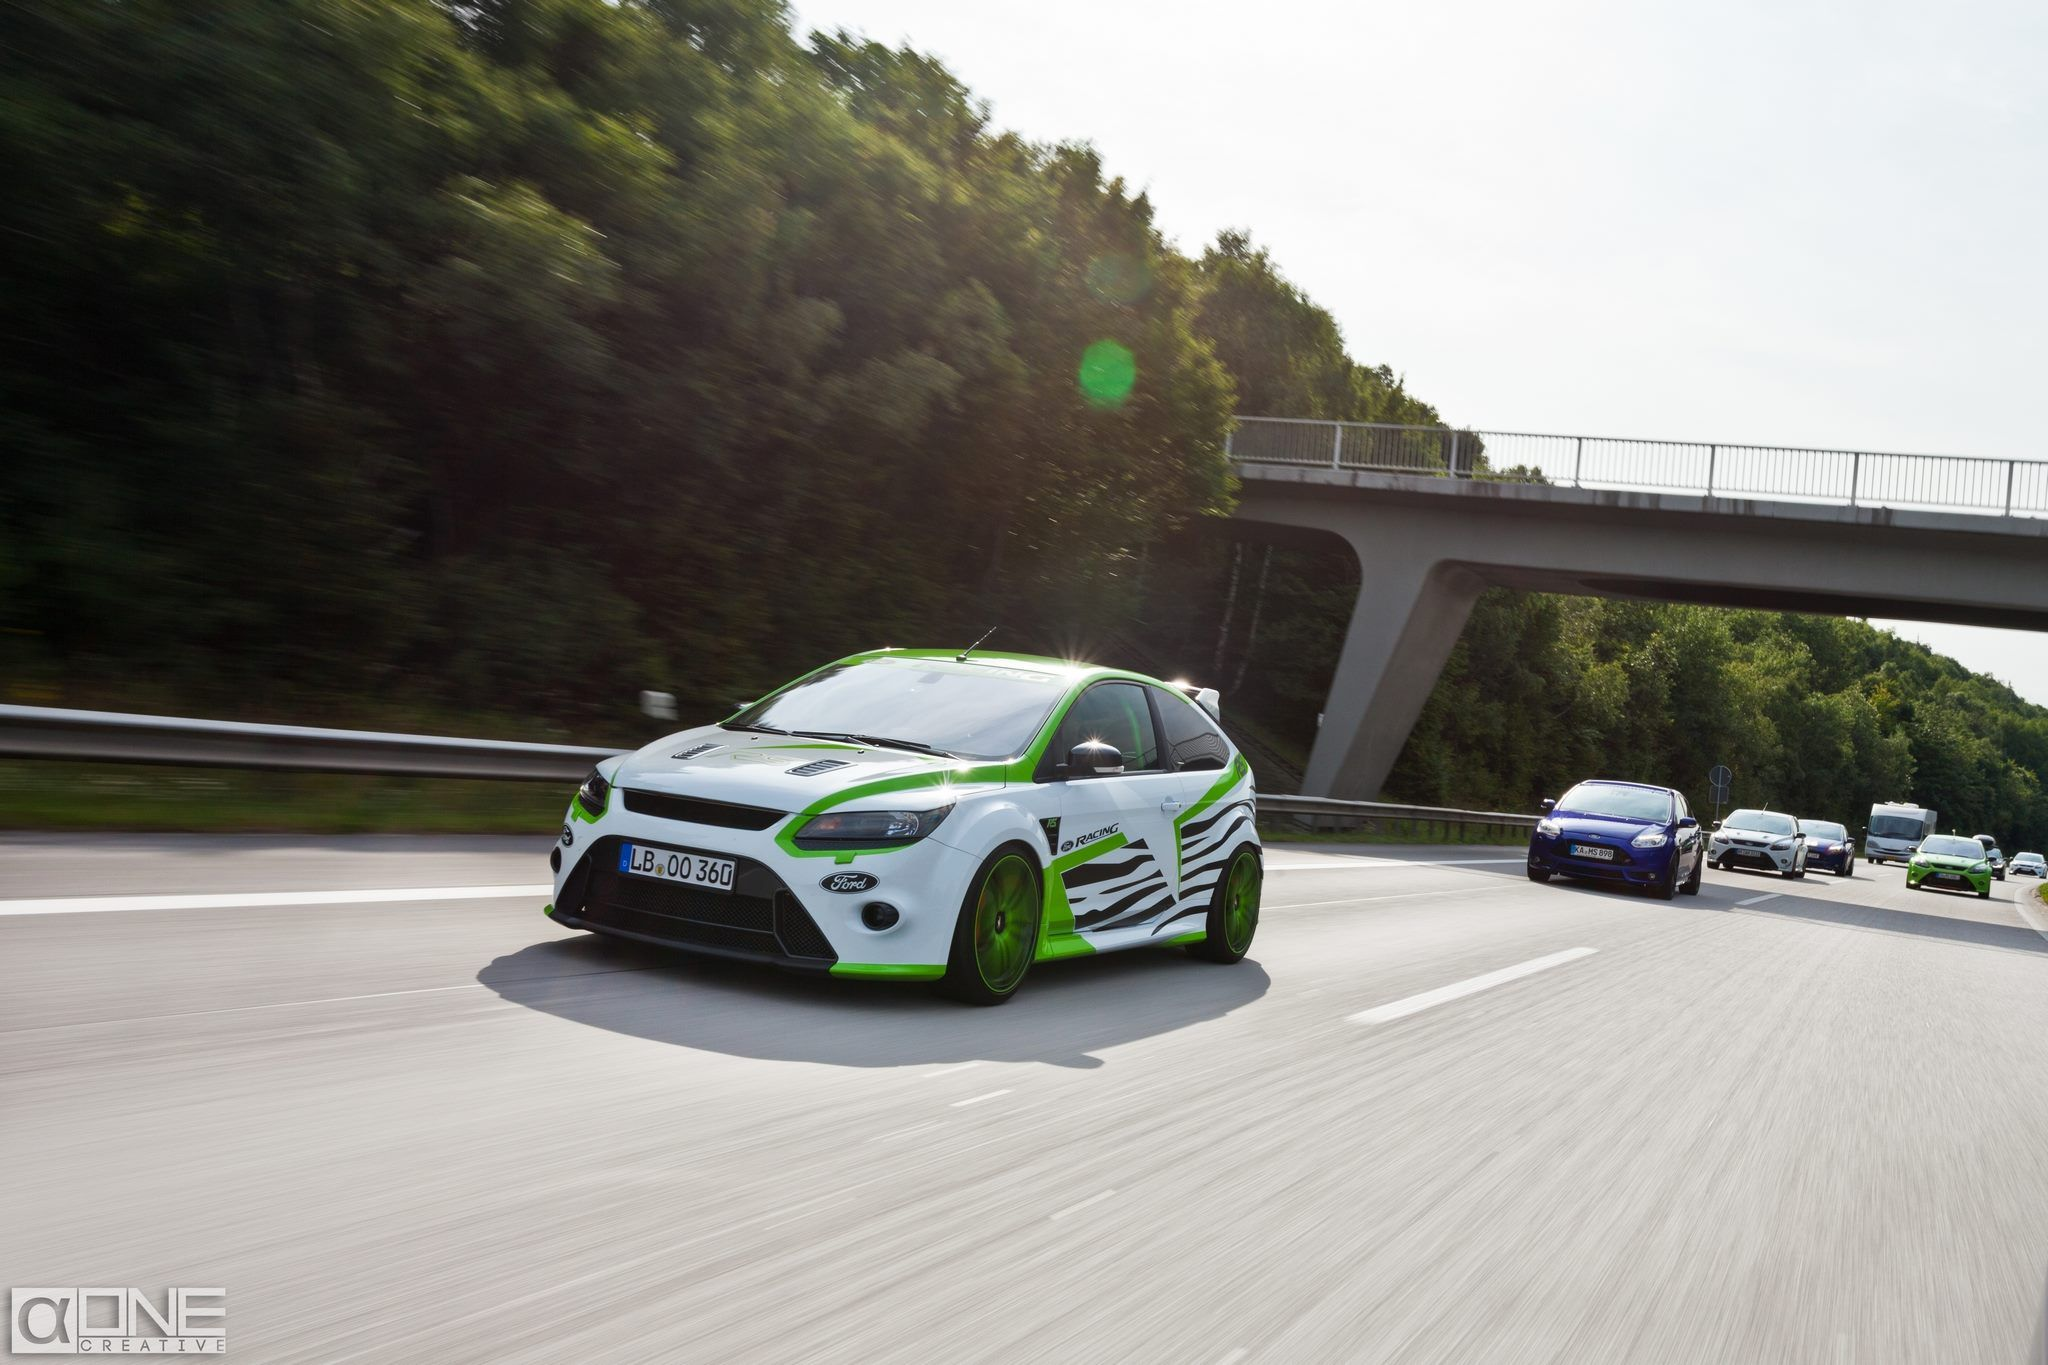 ford focus rs mk2 tuning ford focus rs pinterest. Black Bedroom Furniture Sets. Home Design Ideas